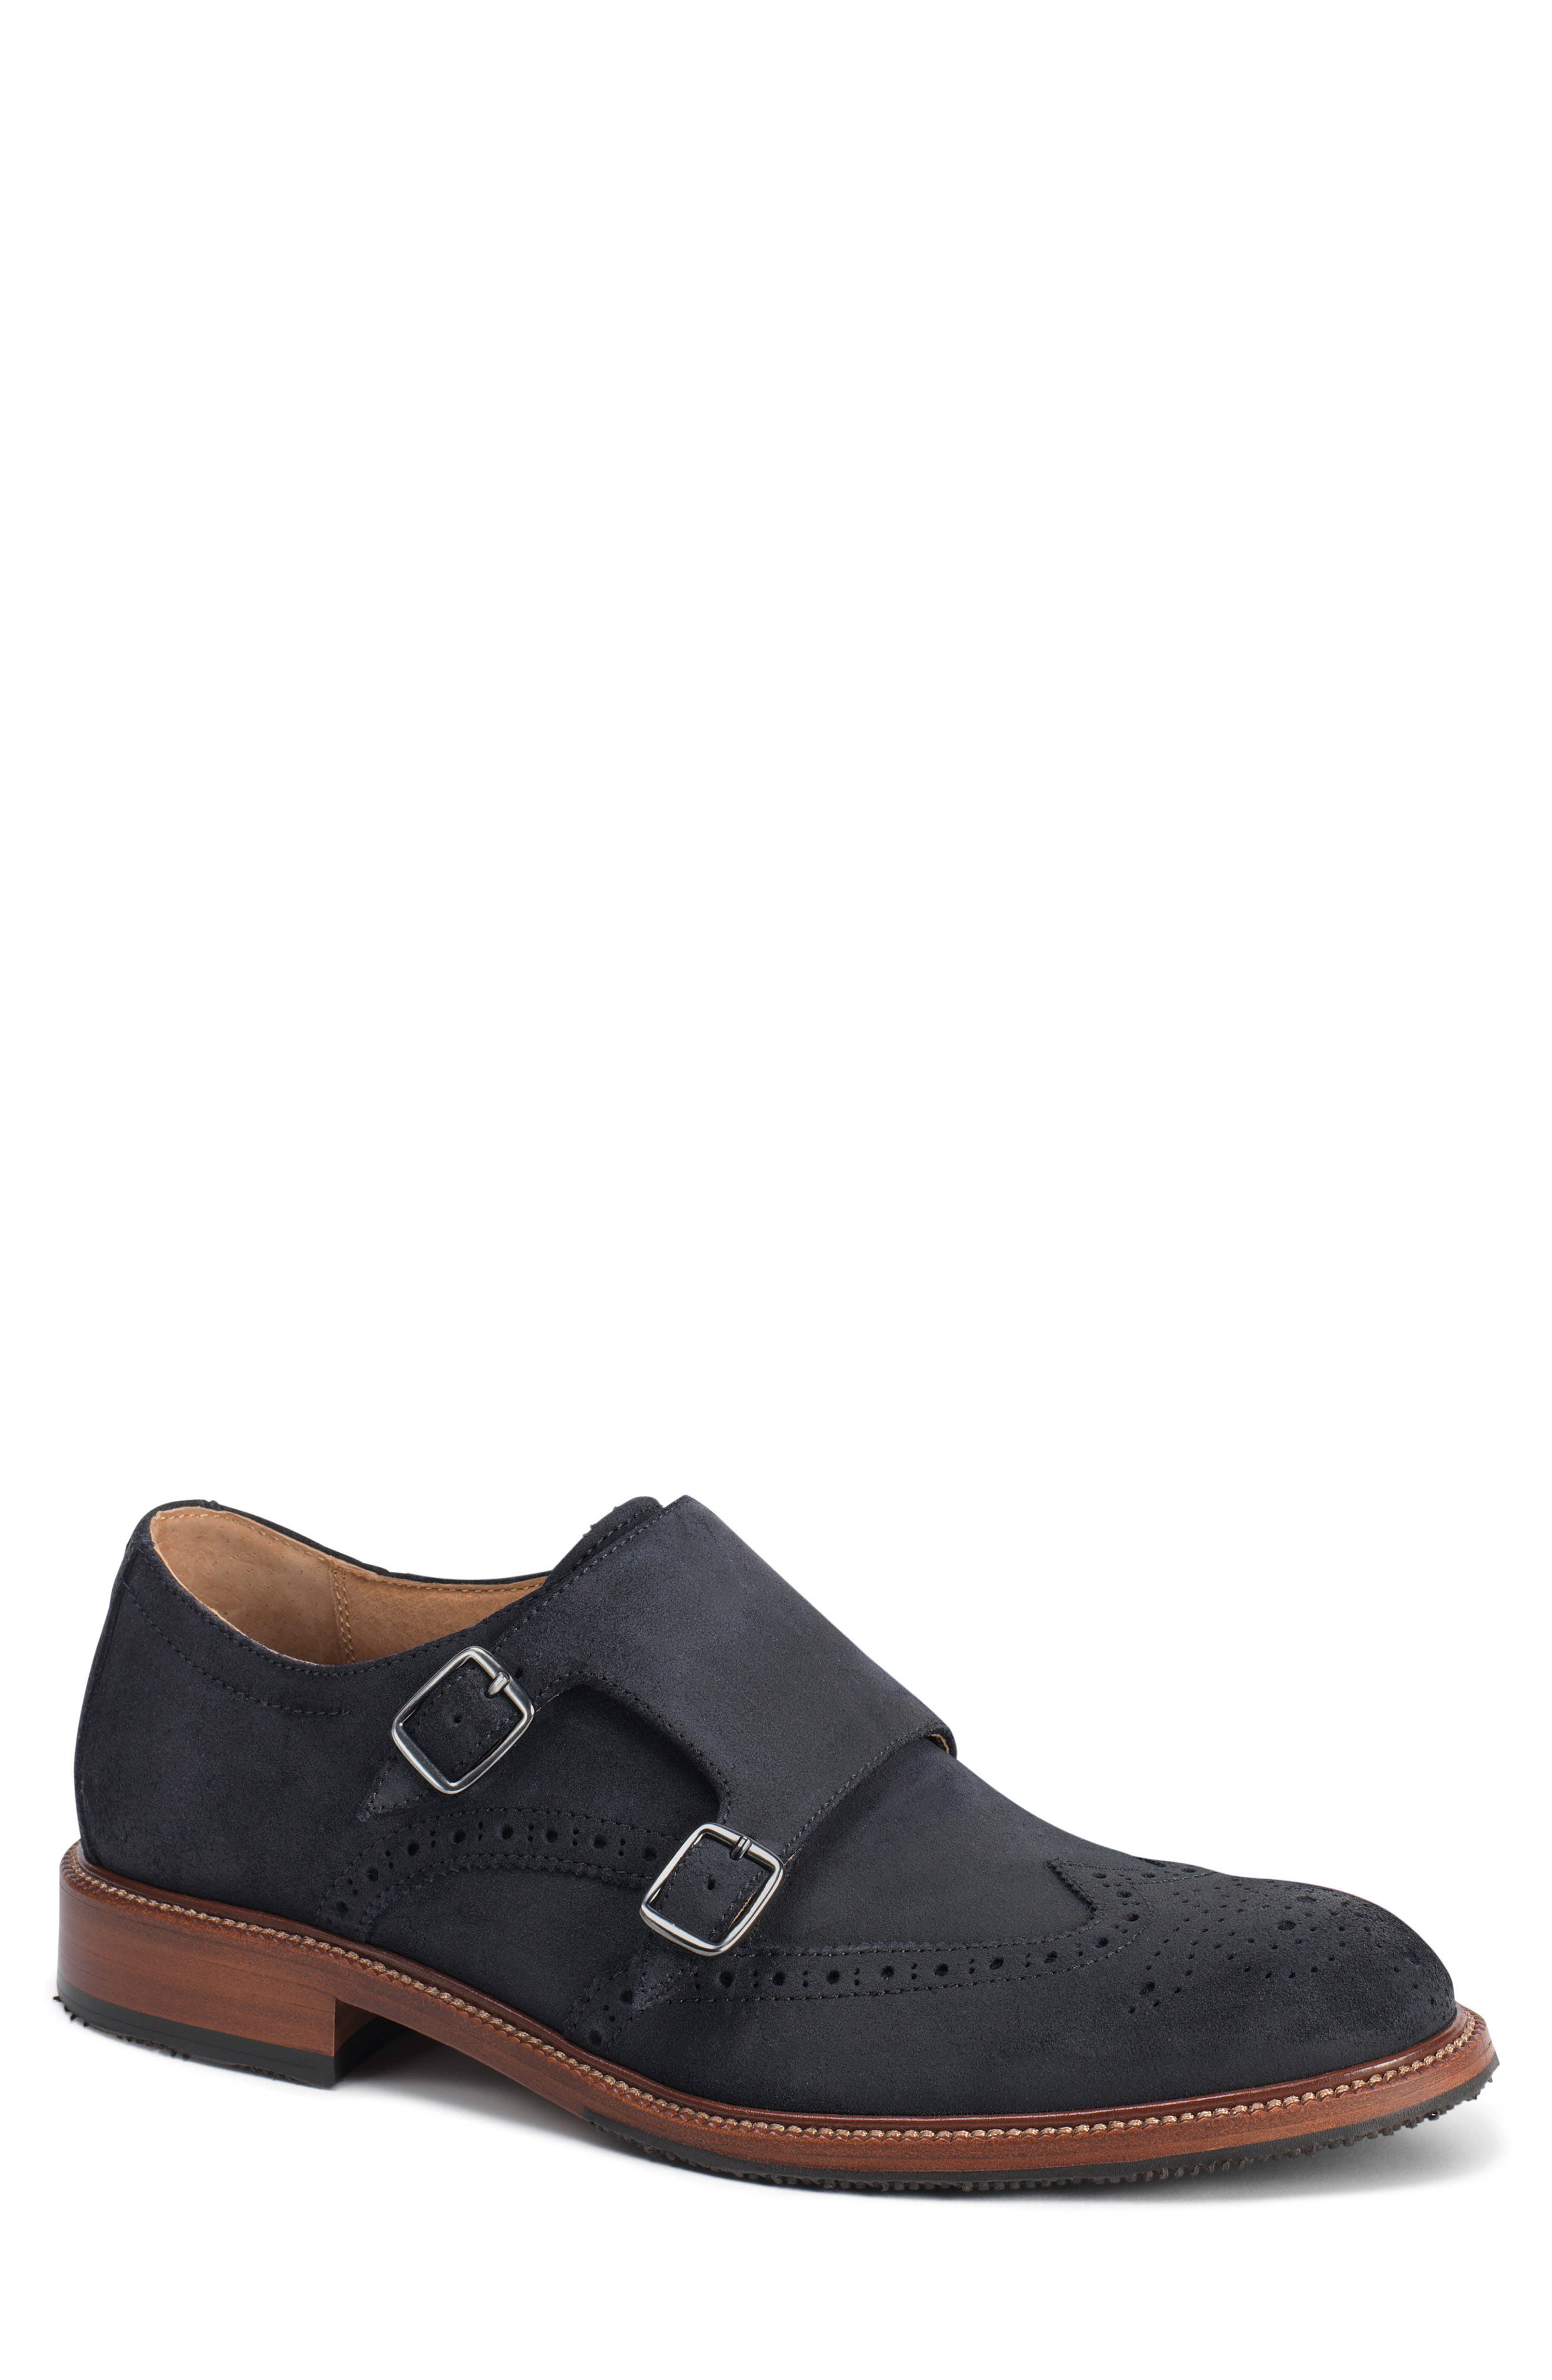 Leland Double Monk Strap Shoe,                         Main,                         color, Navy Waxed Suede